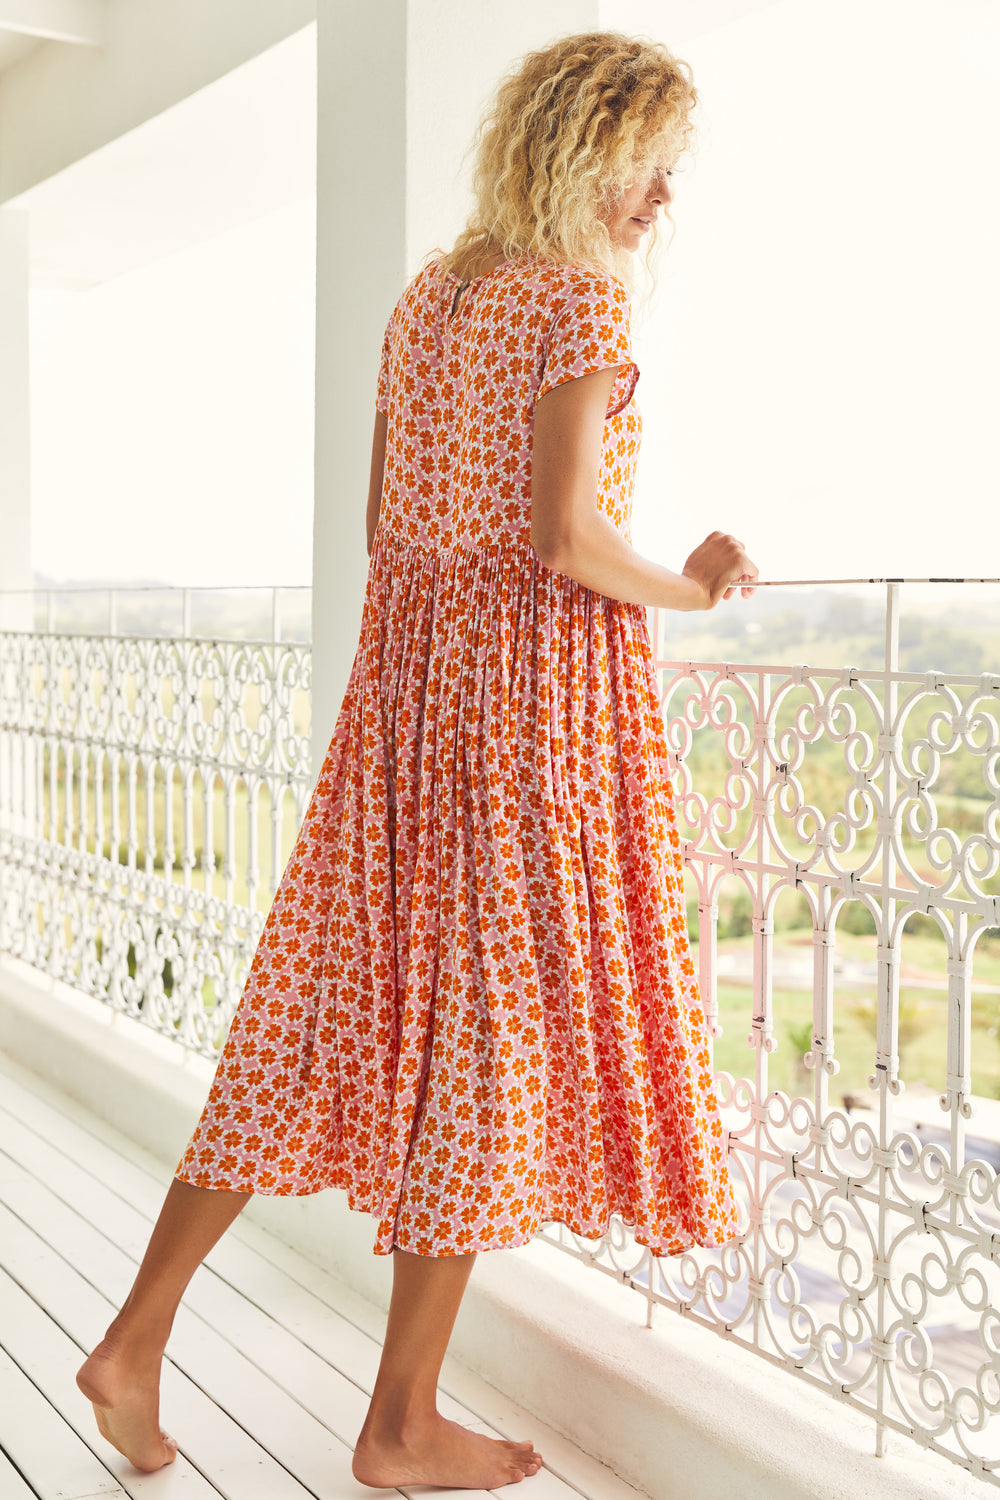 Spring Zoe Dress In Honey Blossom